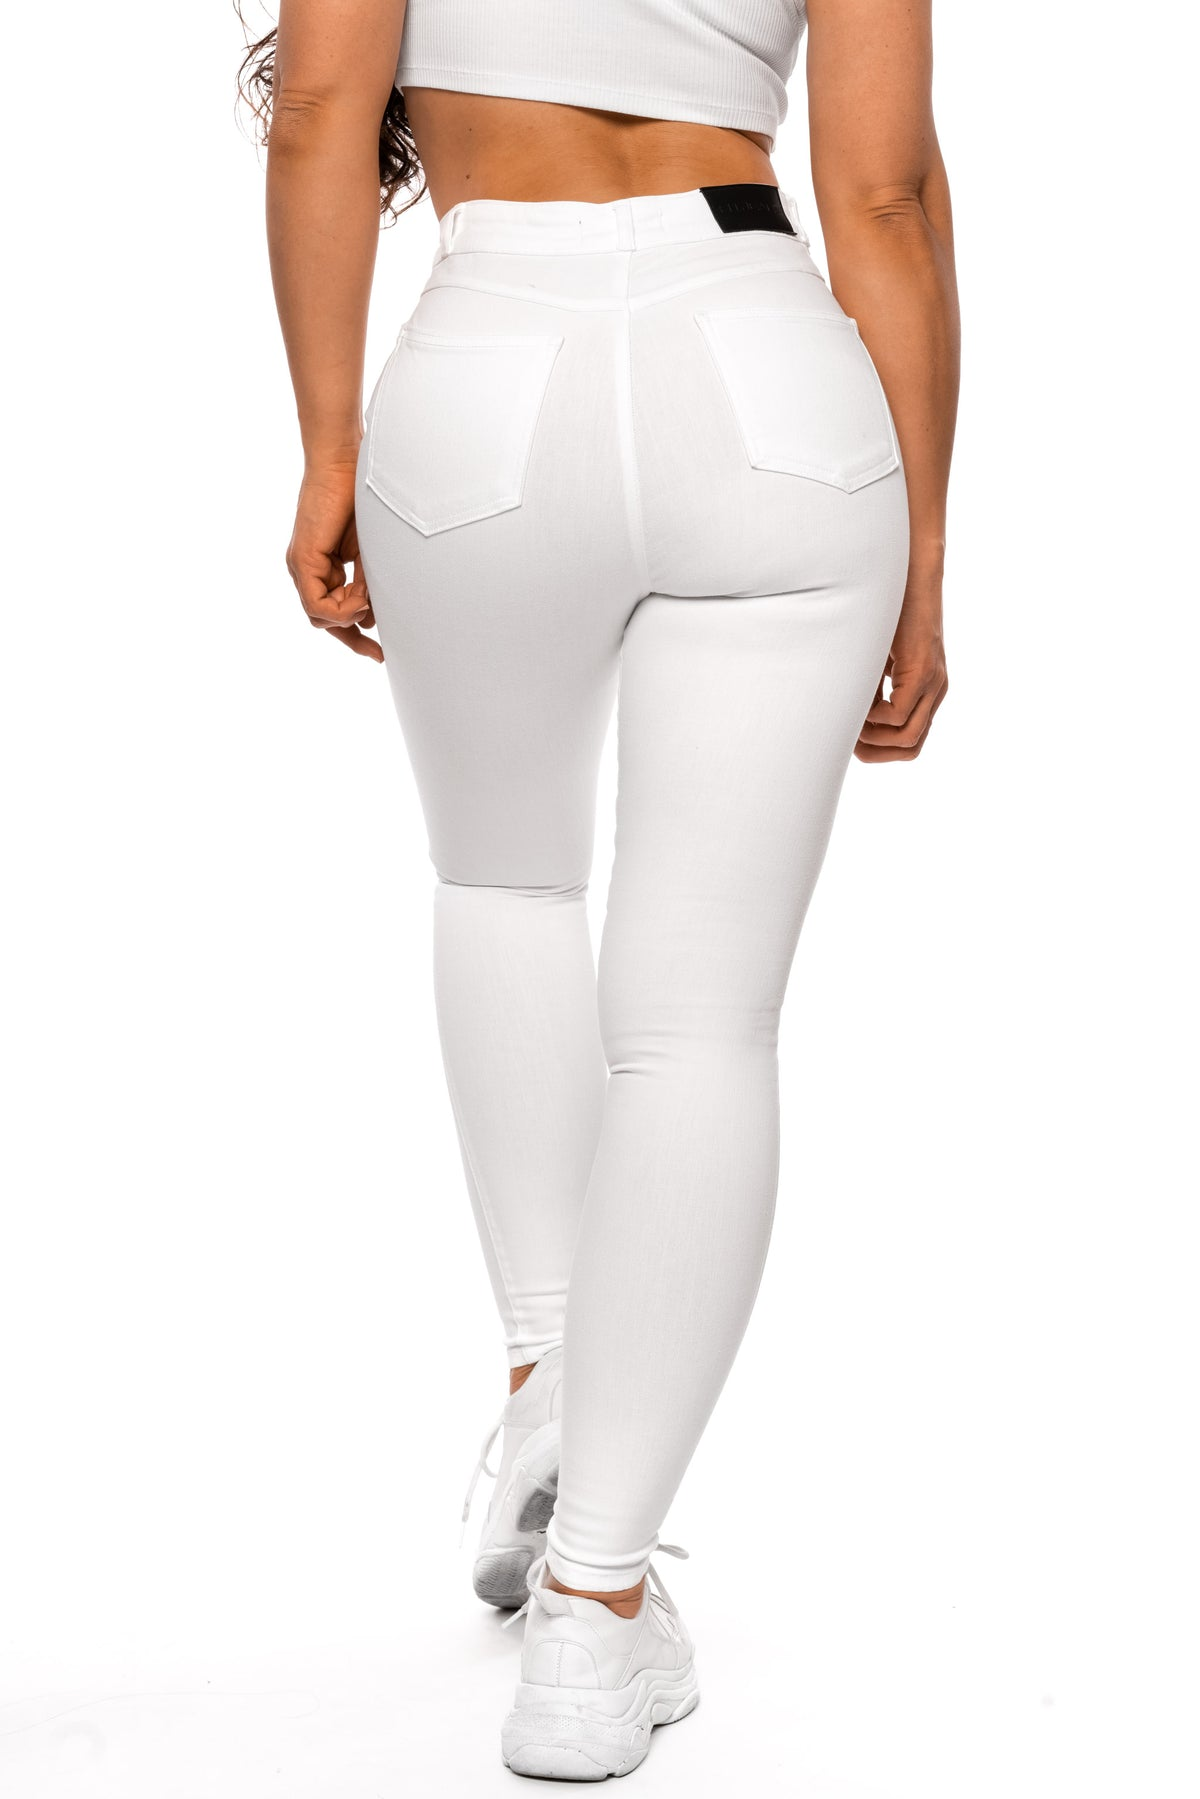 Womens Regular Pastel High Waisted Fitjeans - White